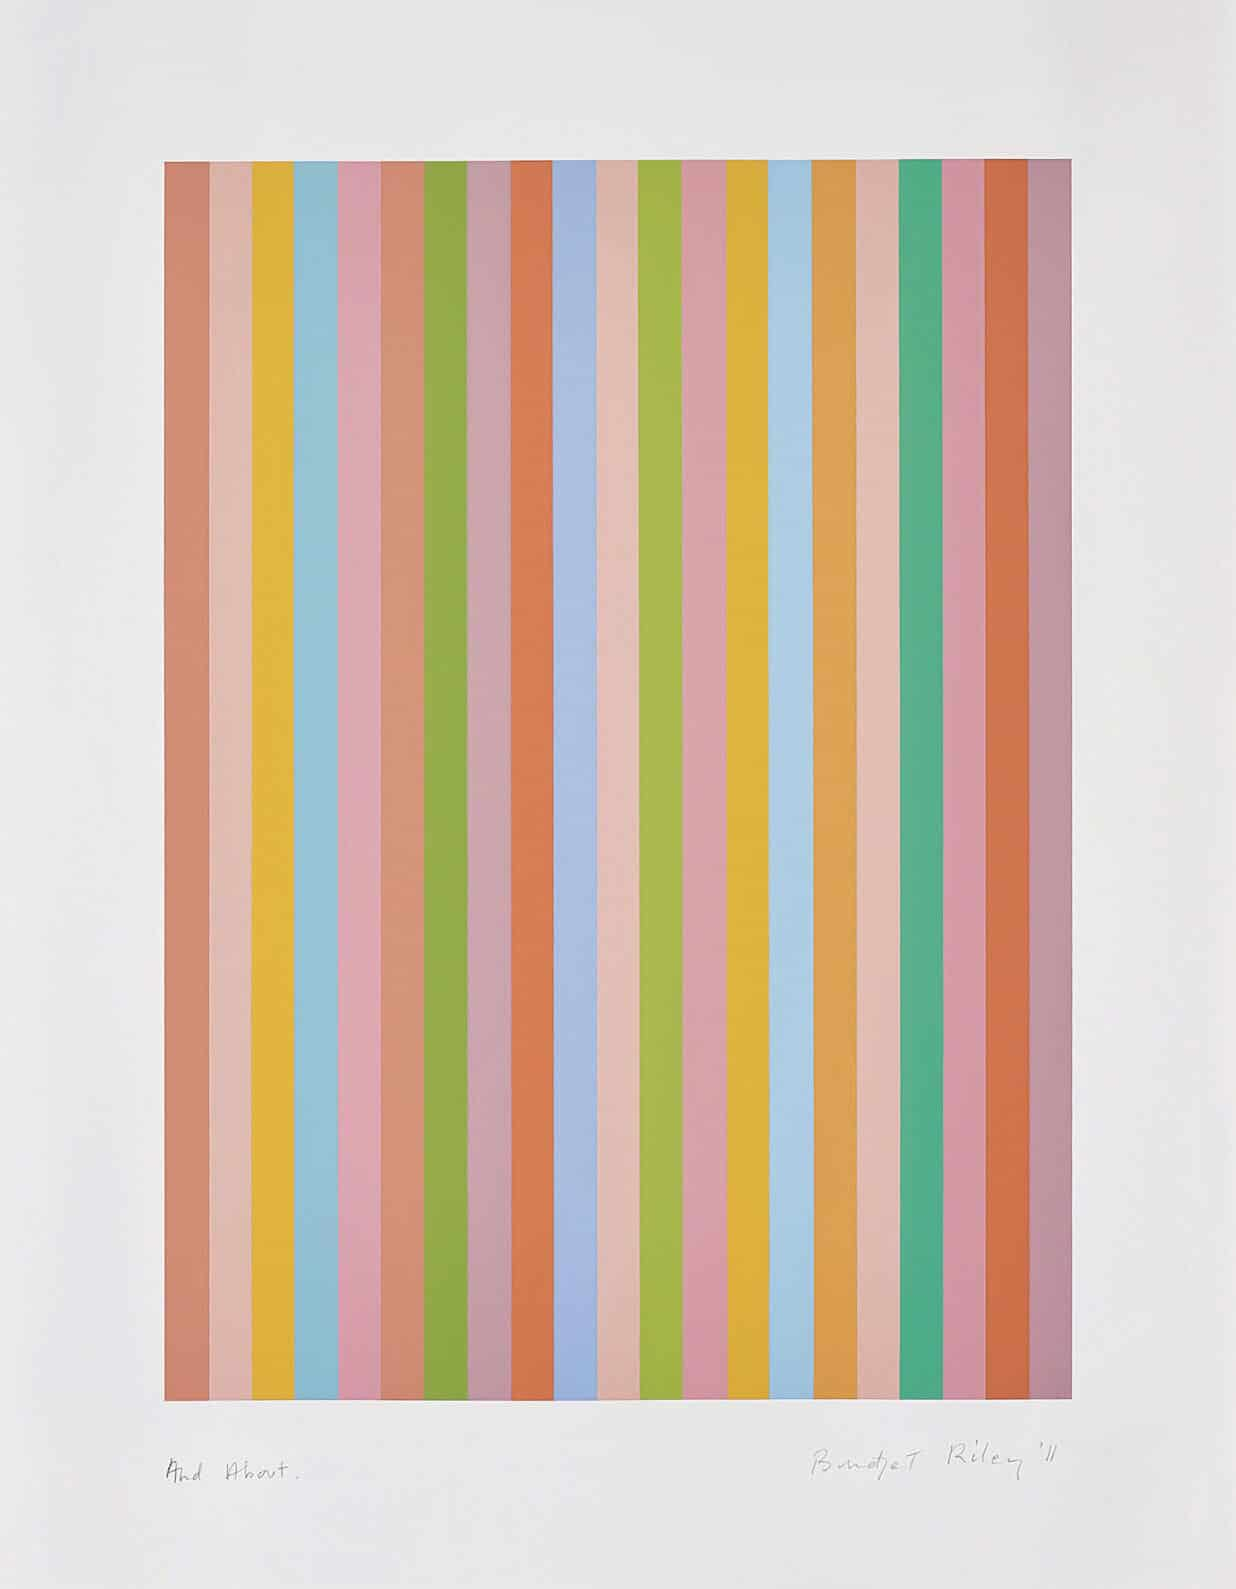 Bridget Riley at Zebra One Gallery